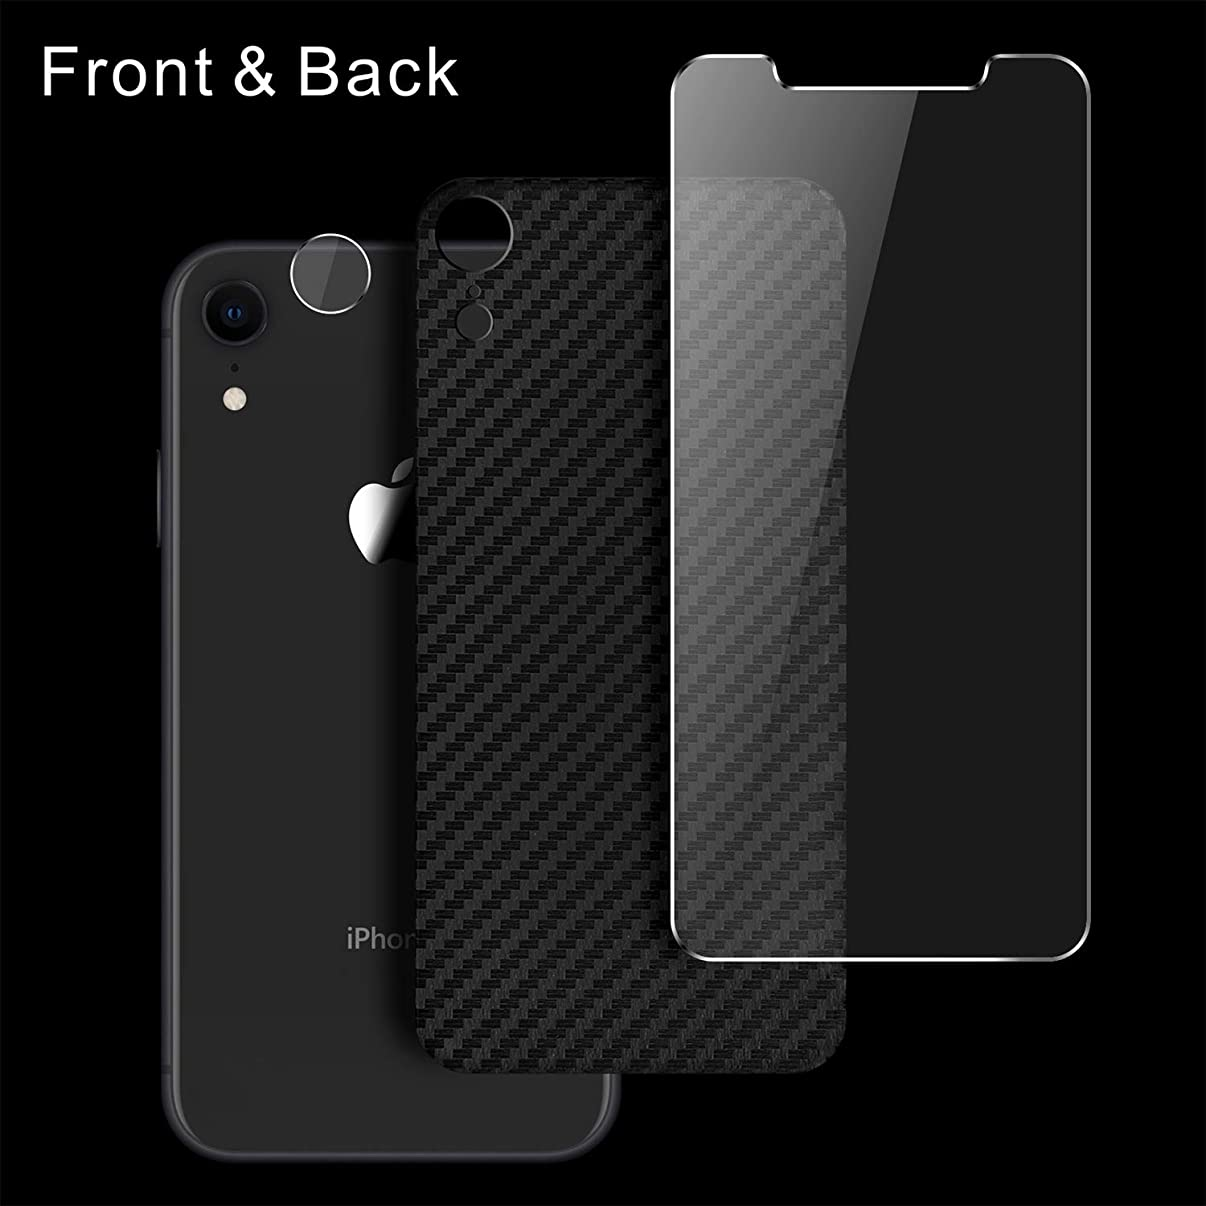 Singularity Products iPhone Xr Front Back Screen Protector, Tempered Glass Screen Protectors HD Clear Anti Fingerprint Special Textured Back Screen Protector Film Compatible iPhone Xr 6.1 inch